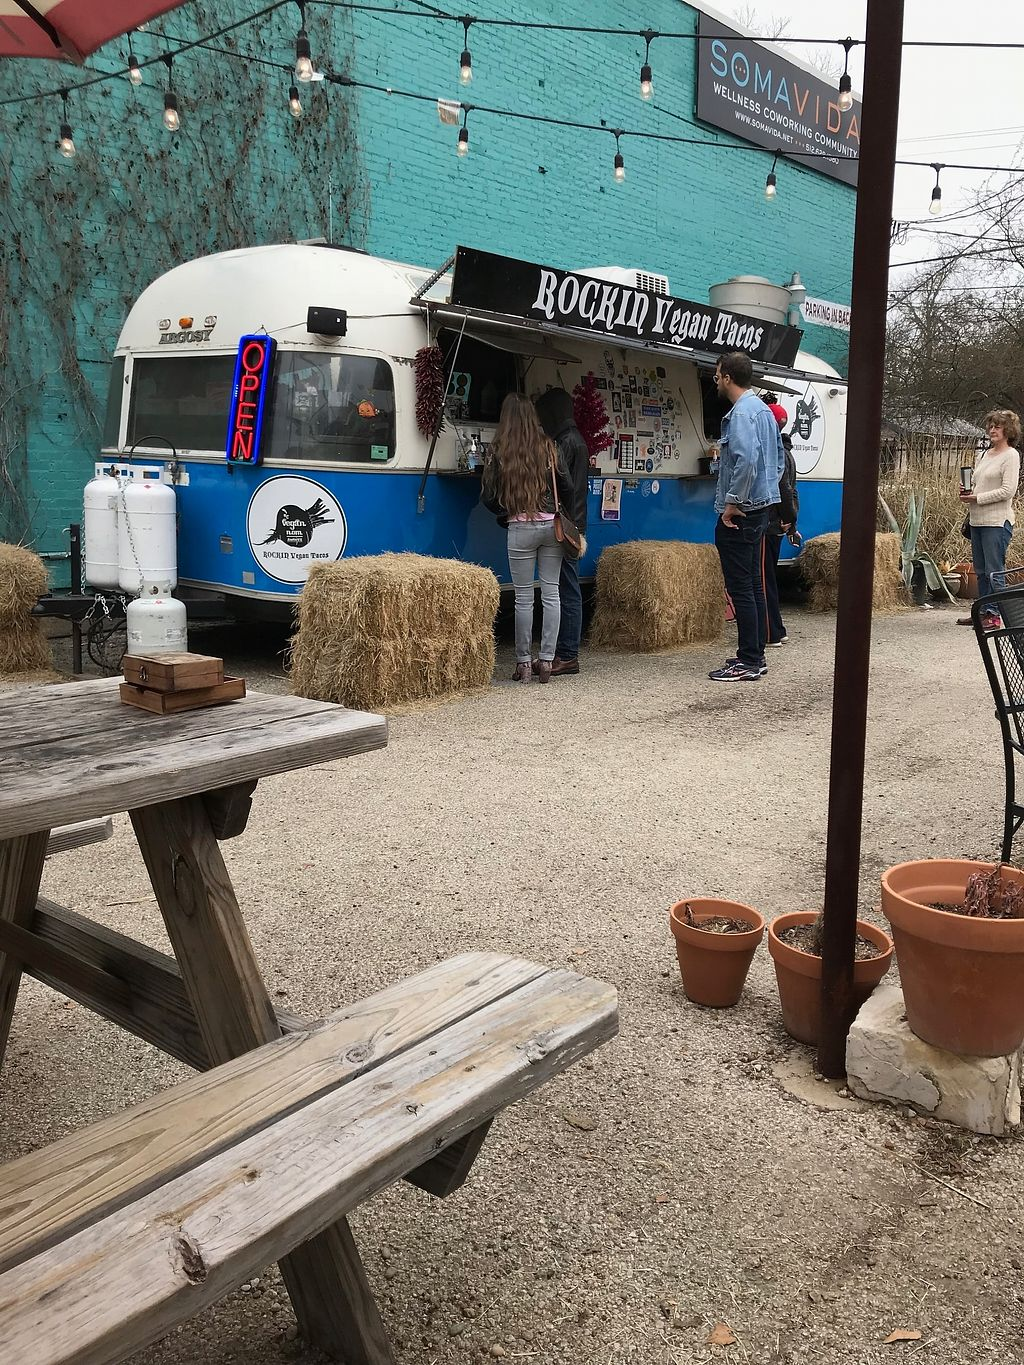 """Photo of The Vegan Nom Food Truck - E Cesar Chavez   by <a href=""""/members/profile/reergymerej"""">reergymerej</a> <br/>Hay, there! <br/> February 1, 2018  - <a href='/contact/abuse/image/88511/353375'>Report</a>"""